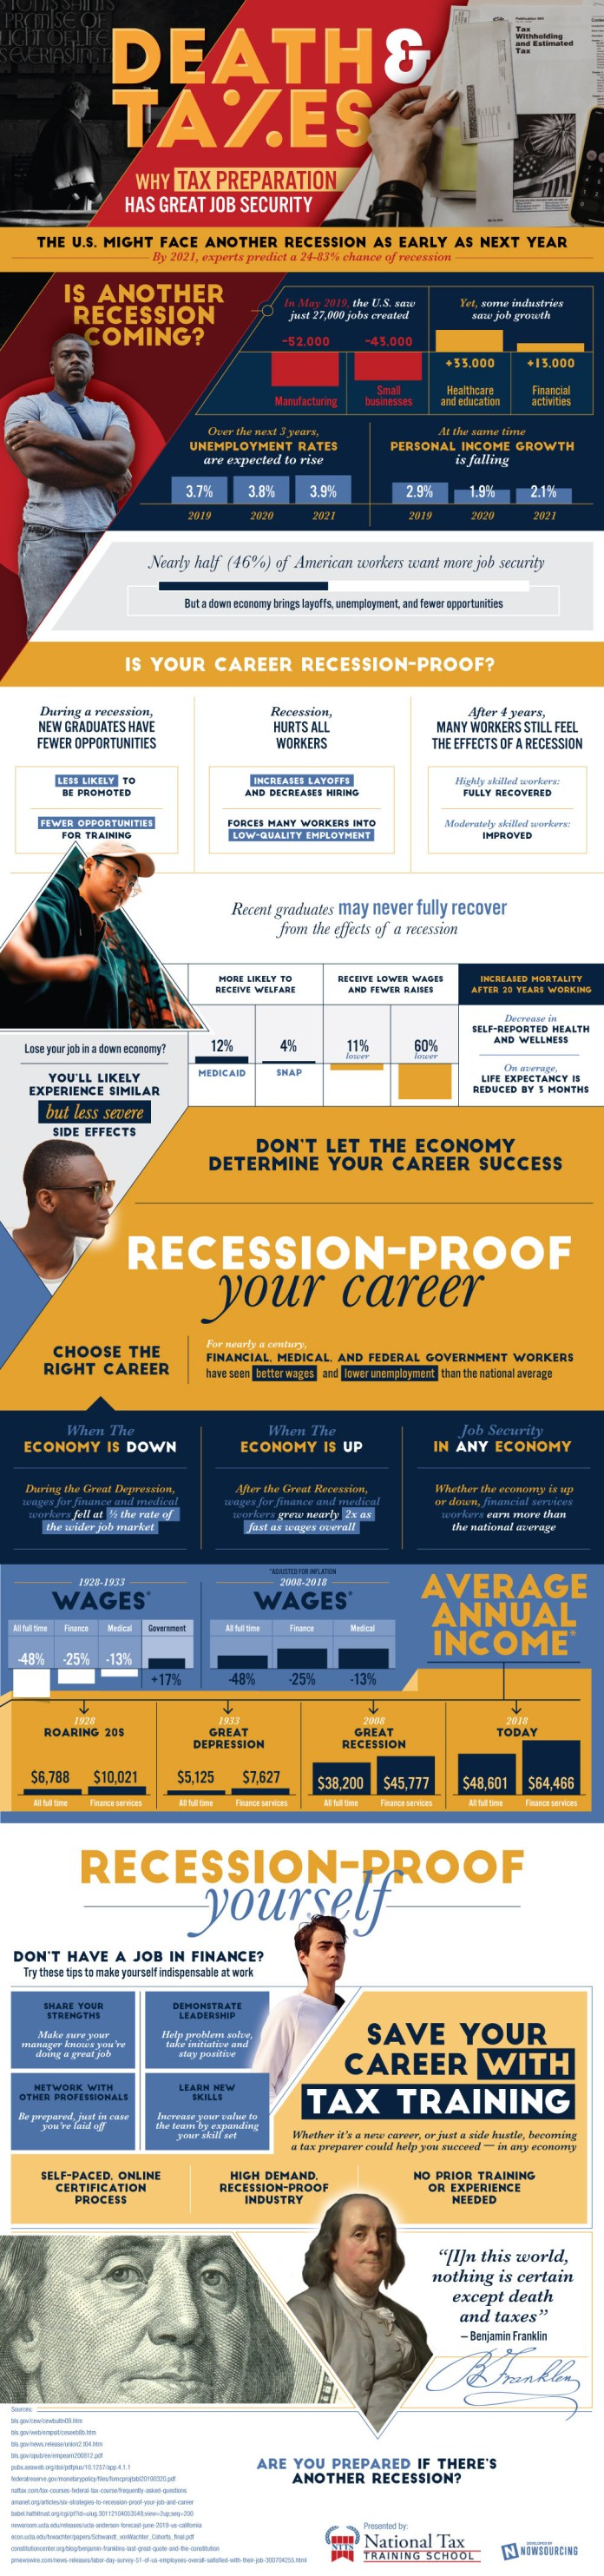 Tax Preparation Careers Weather Economic Downturns 1